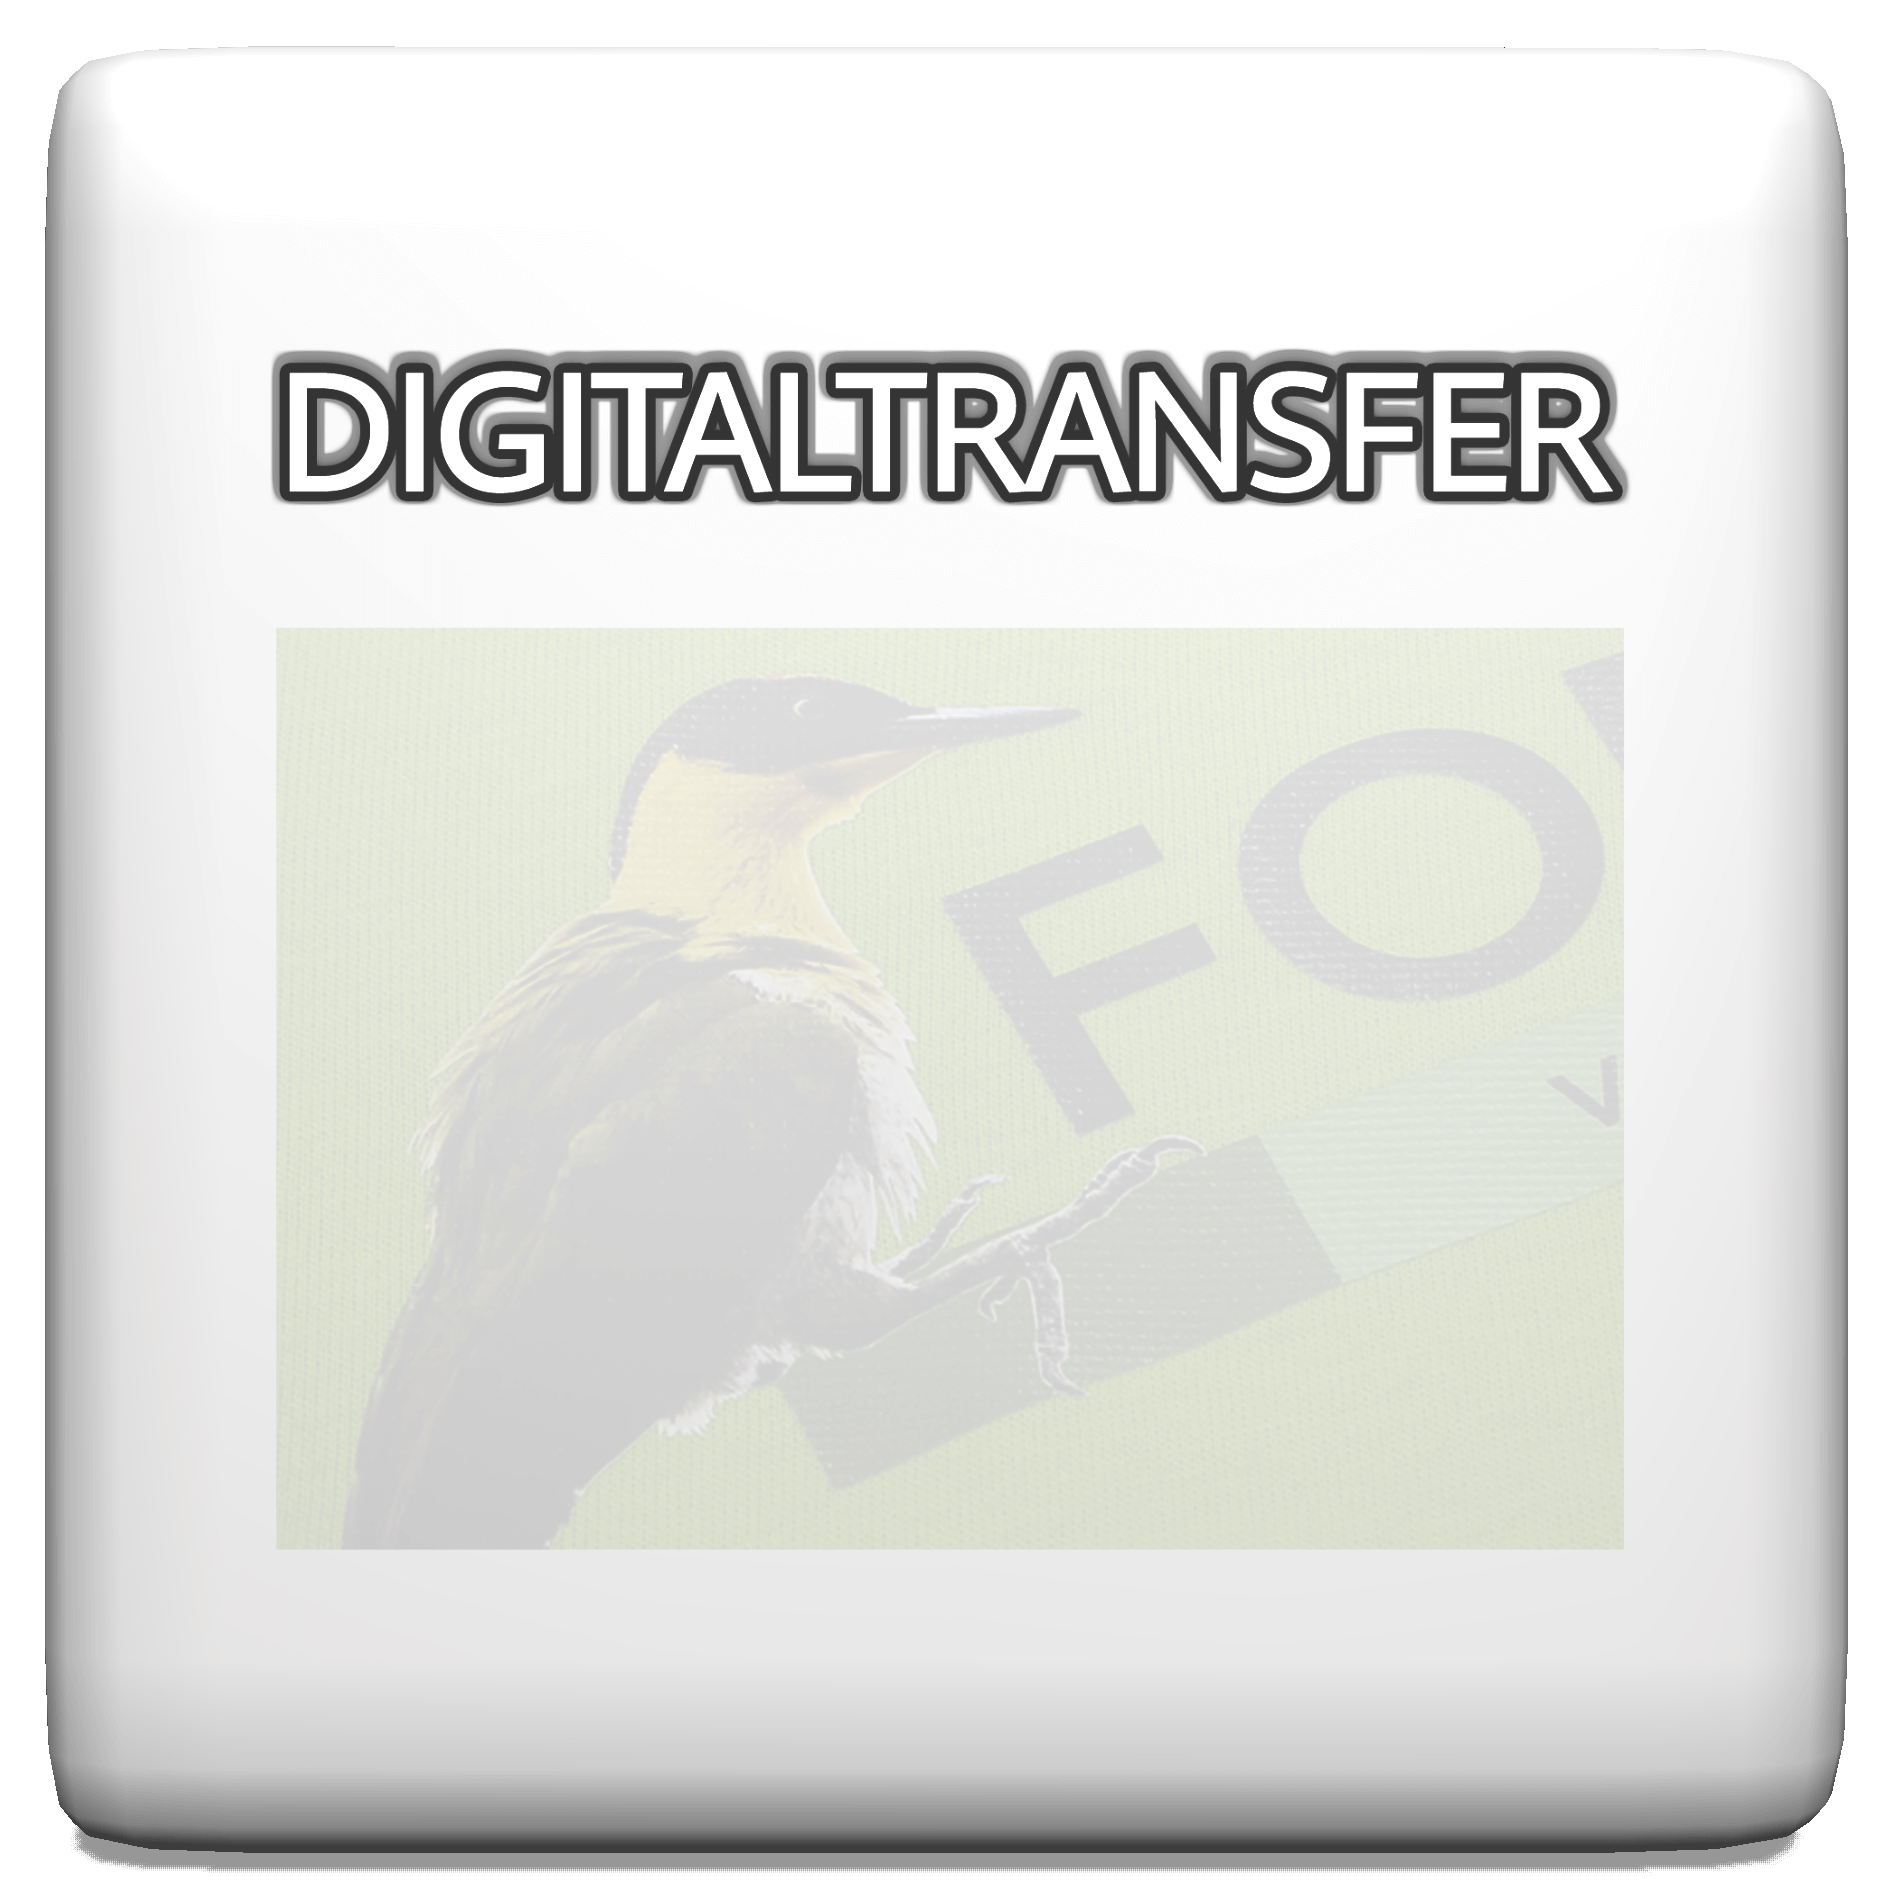 DigitalTransfer_Wuerfel_2